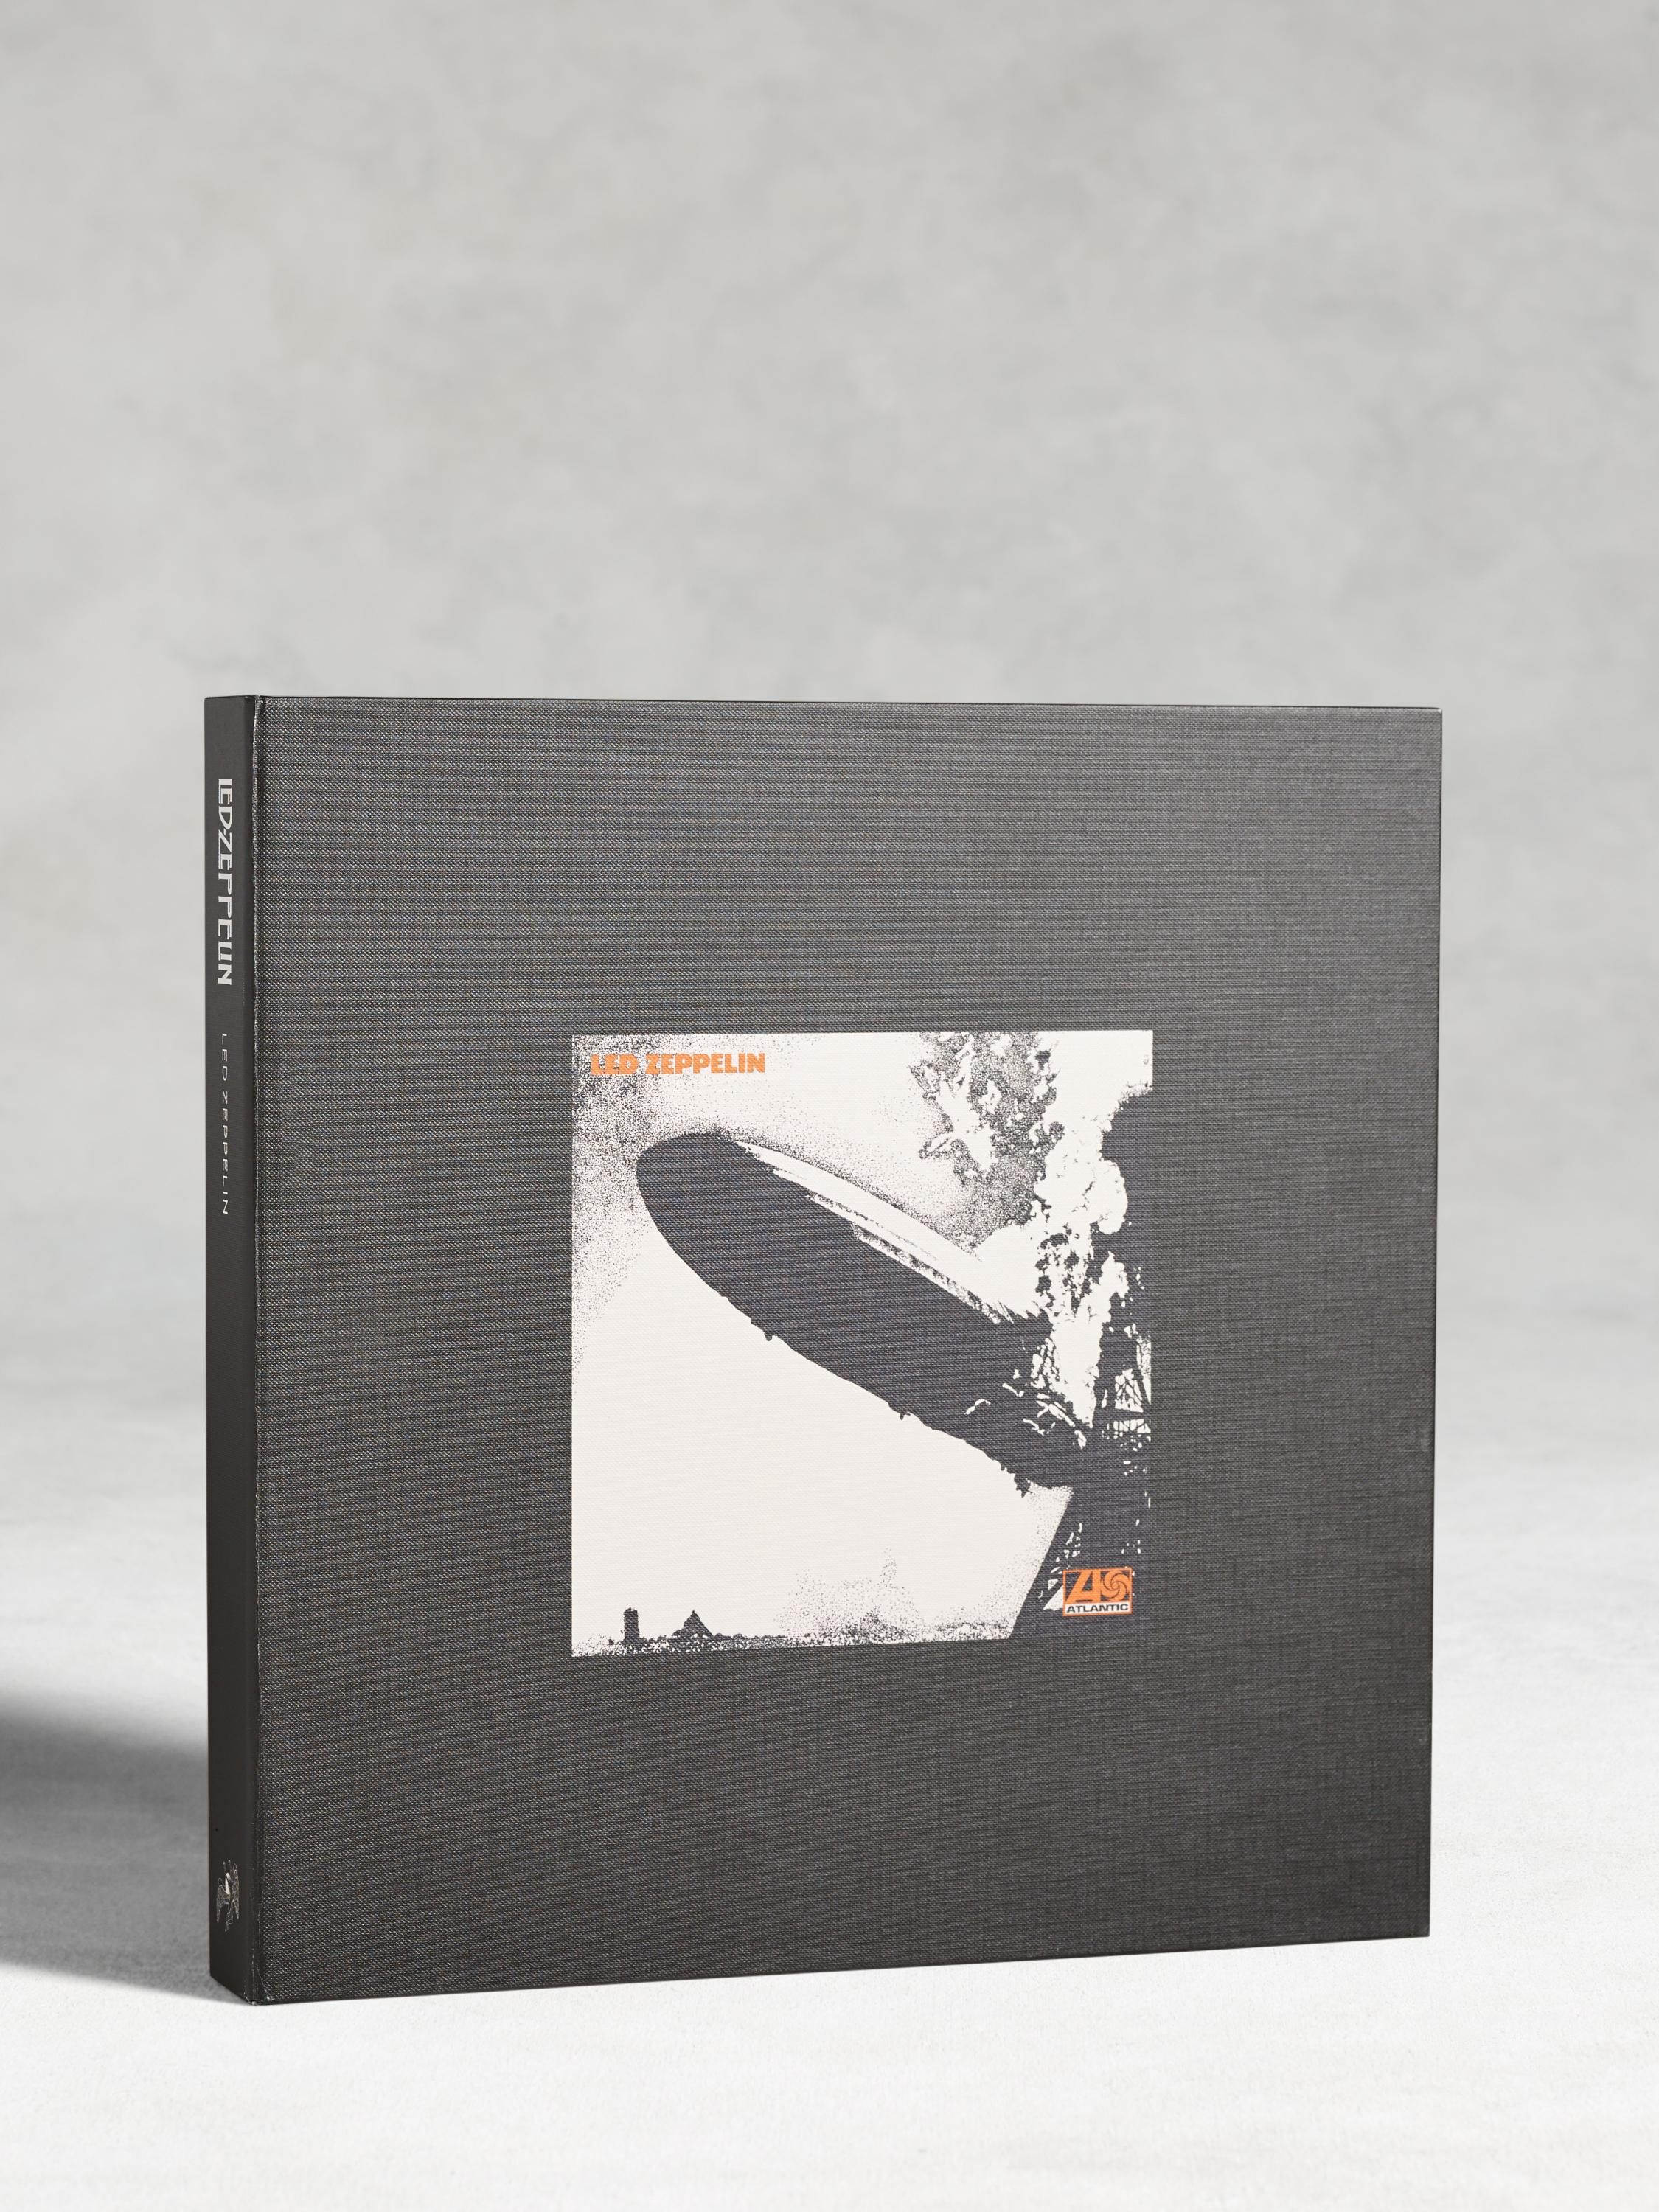 Led Zeppelin - Led Zeppelin I Super Deluxe Edition Box Set